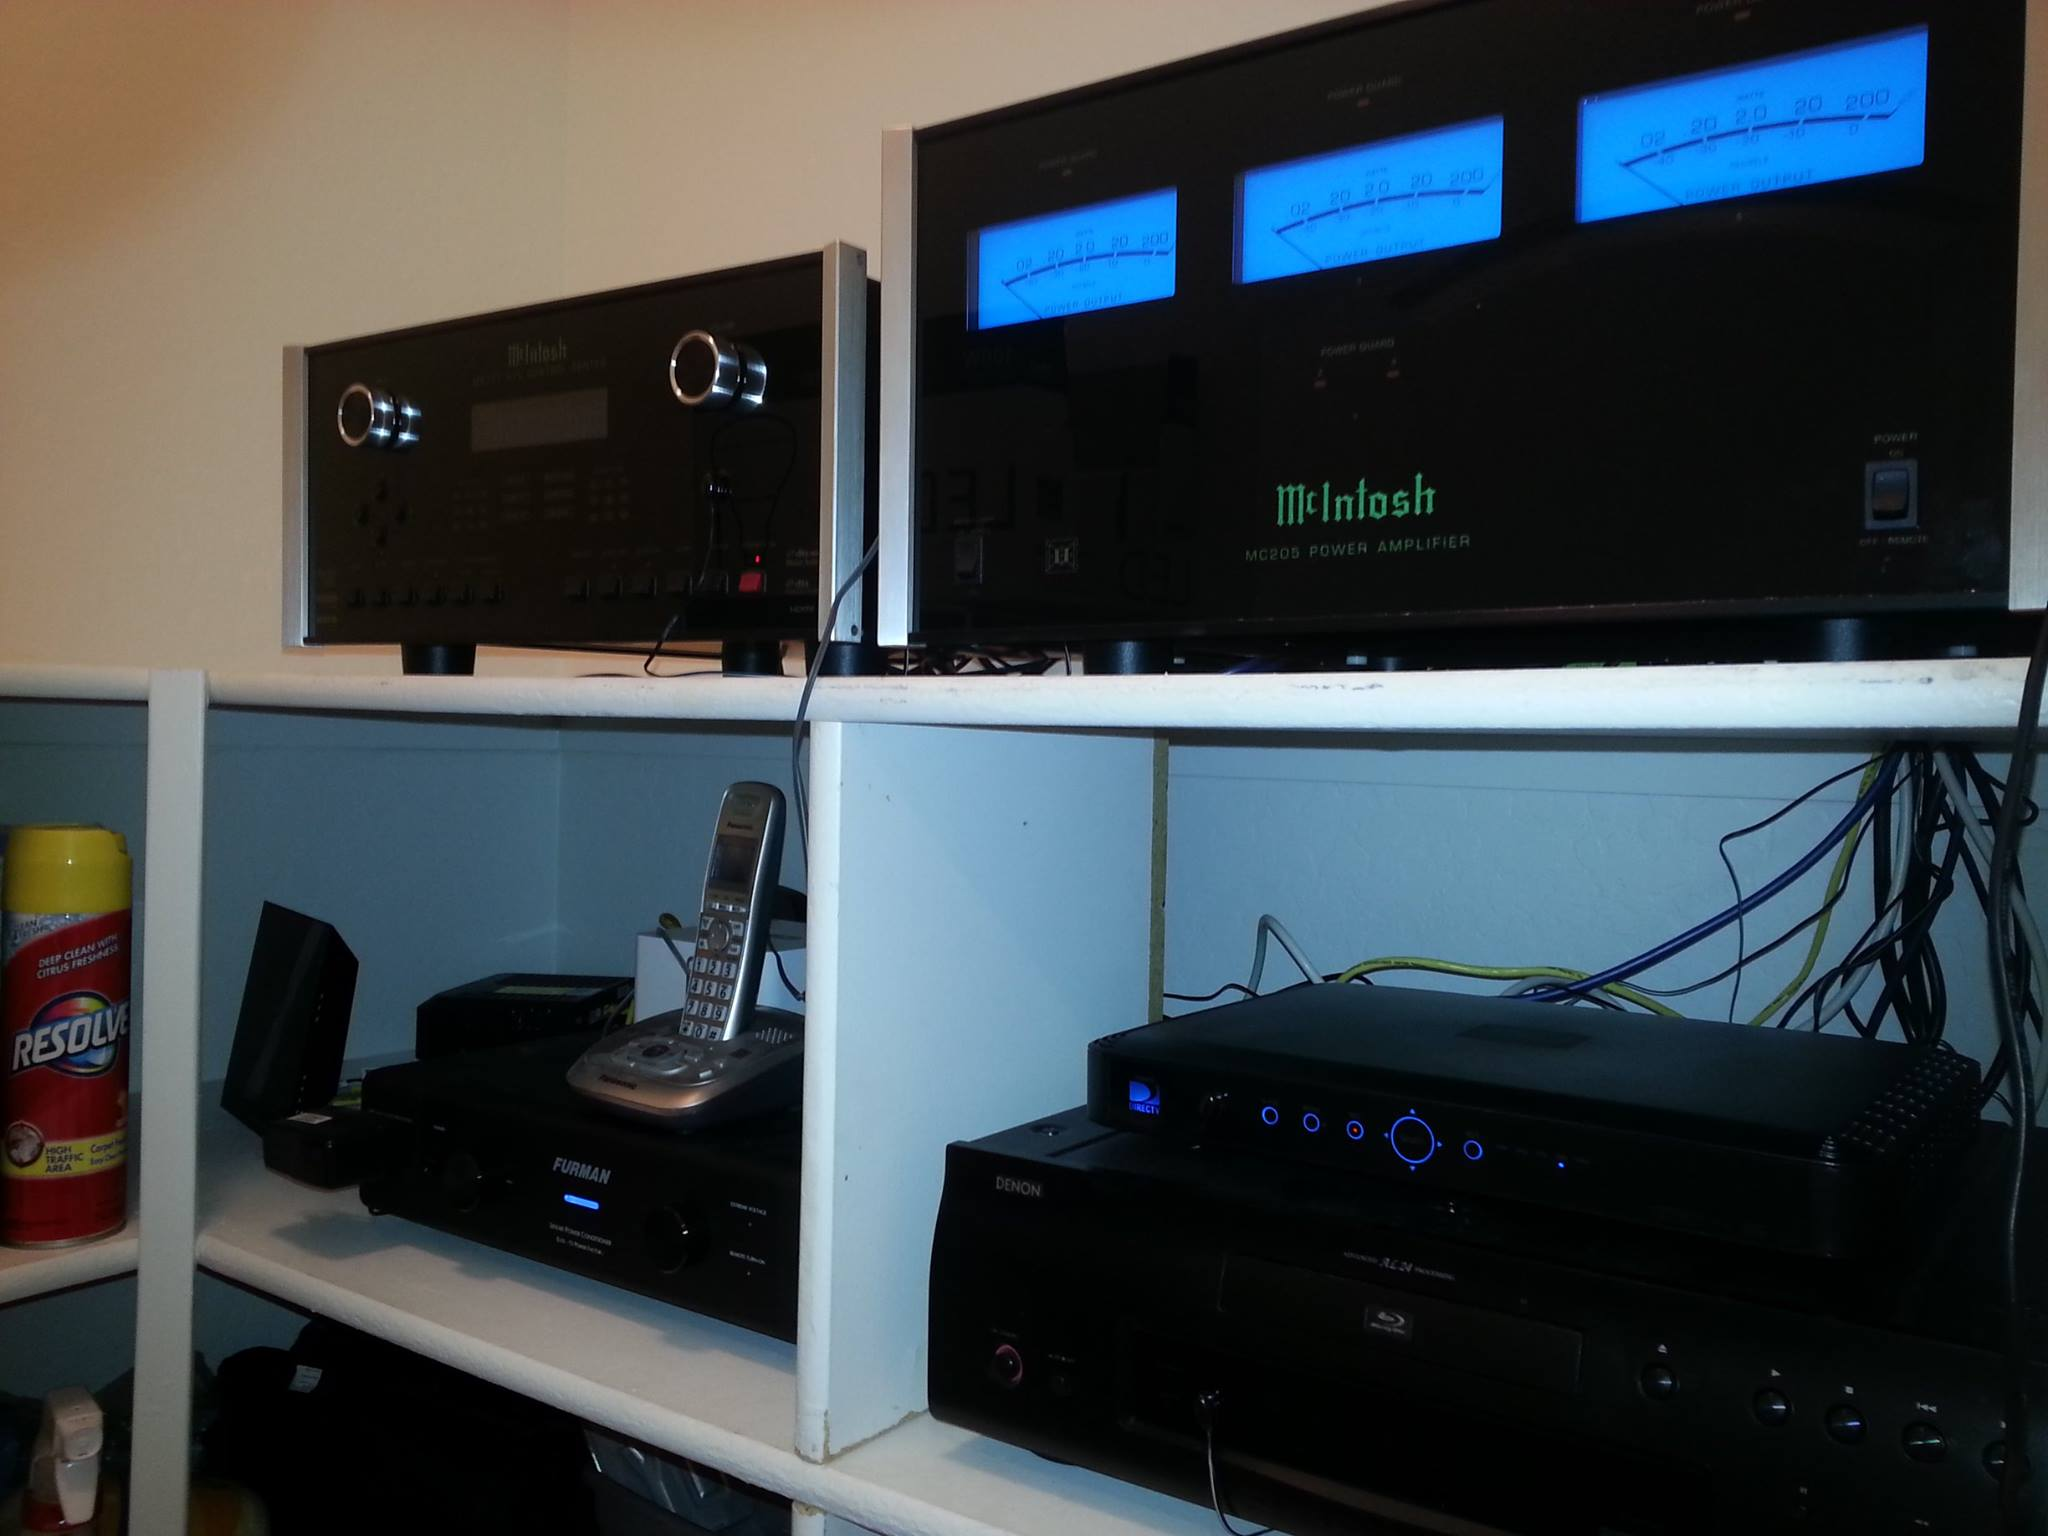 McIntosh Home Theater